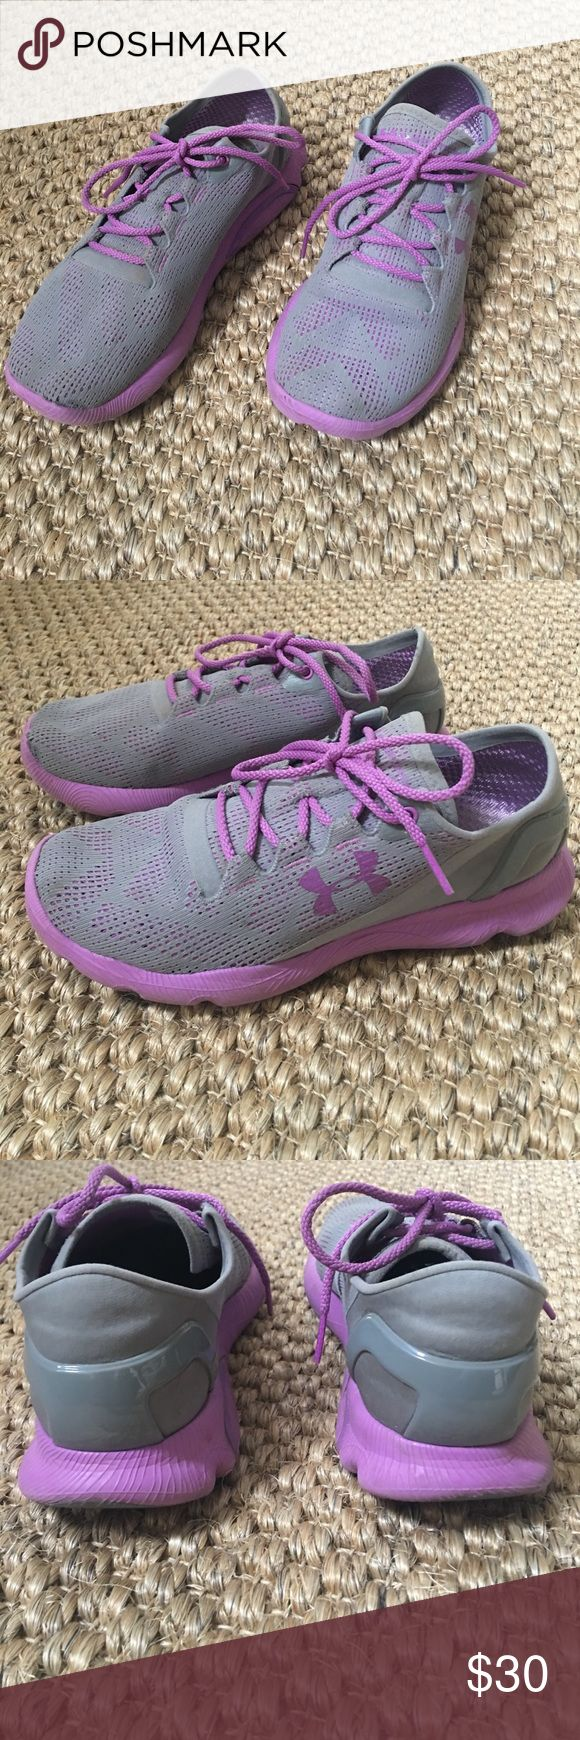 under armour tennis shoes🎉SALE🎉 Running shoes from under armour. Have a slight tear in front netting. Under Armour Shoes Athletic Shoes